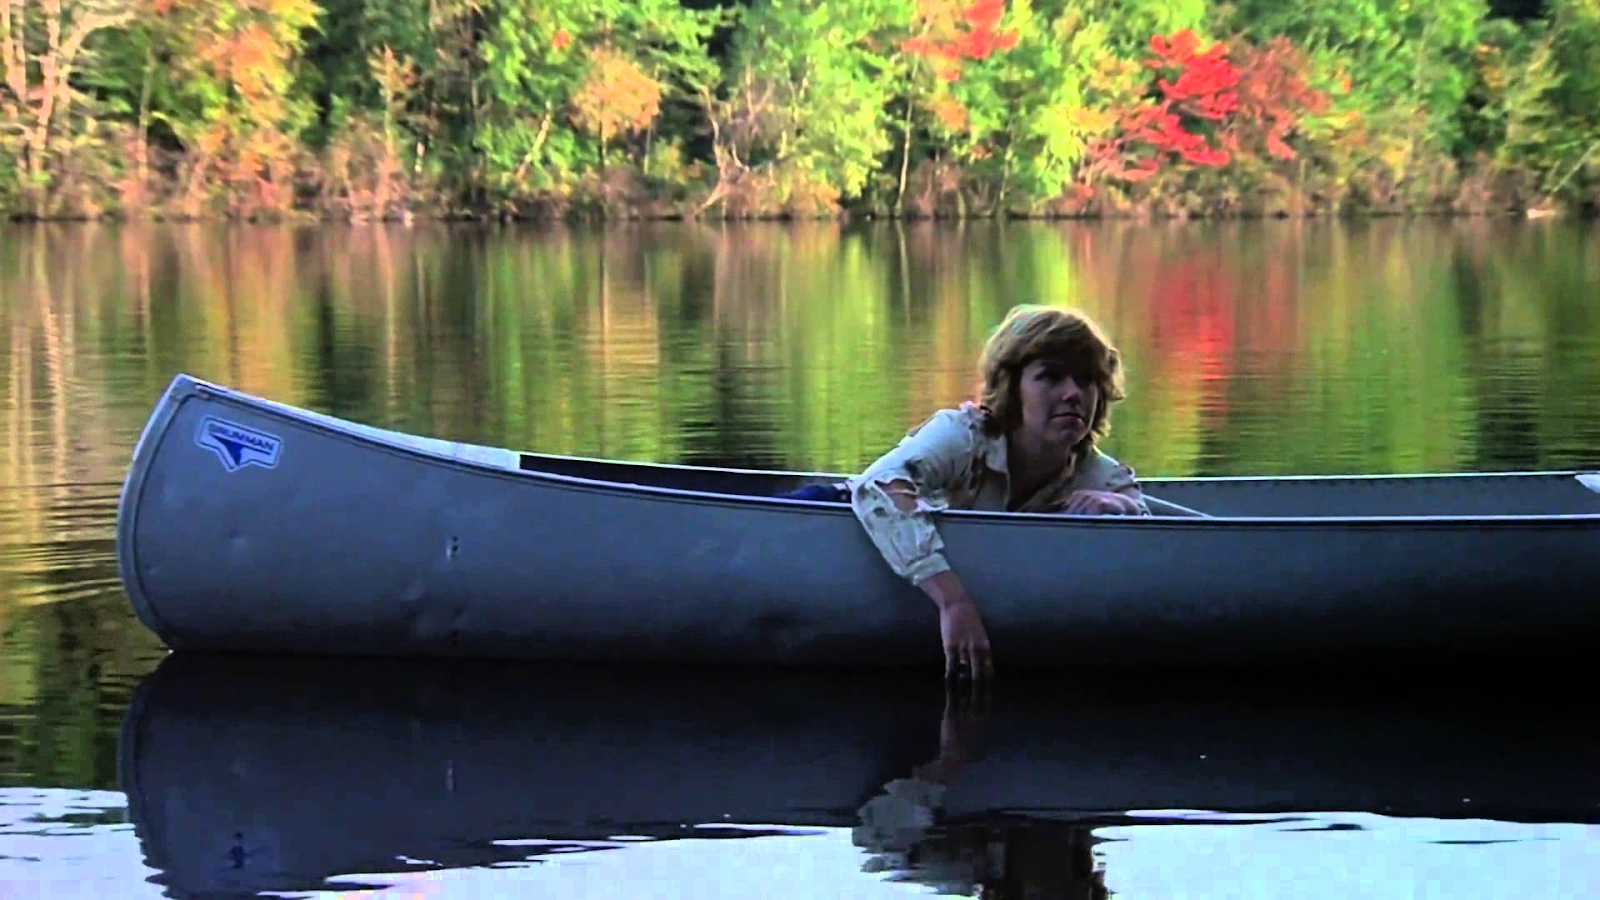 Still from Friday the 13th (1980). A young woman, Alice, lays in a canoe on a still lake. Her shirt is torn and dirty, and she reaches an arm over the edge to trail her fingers in the water.